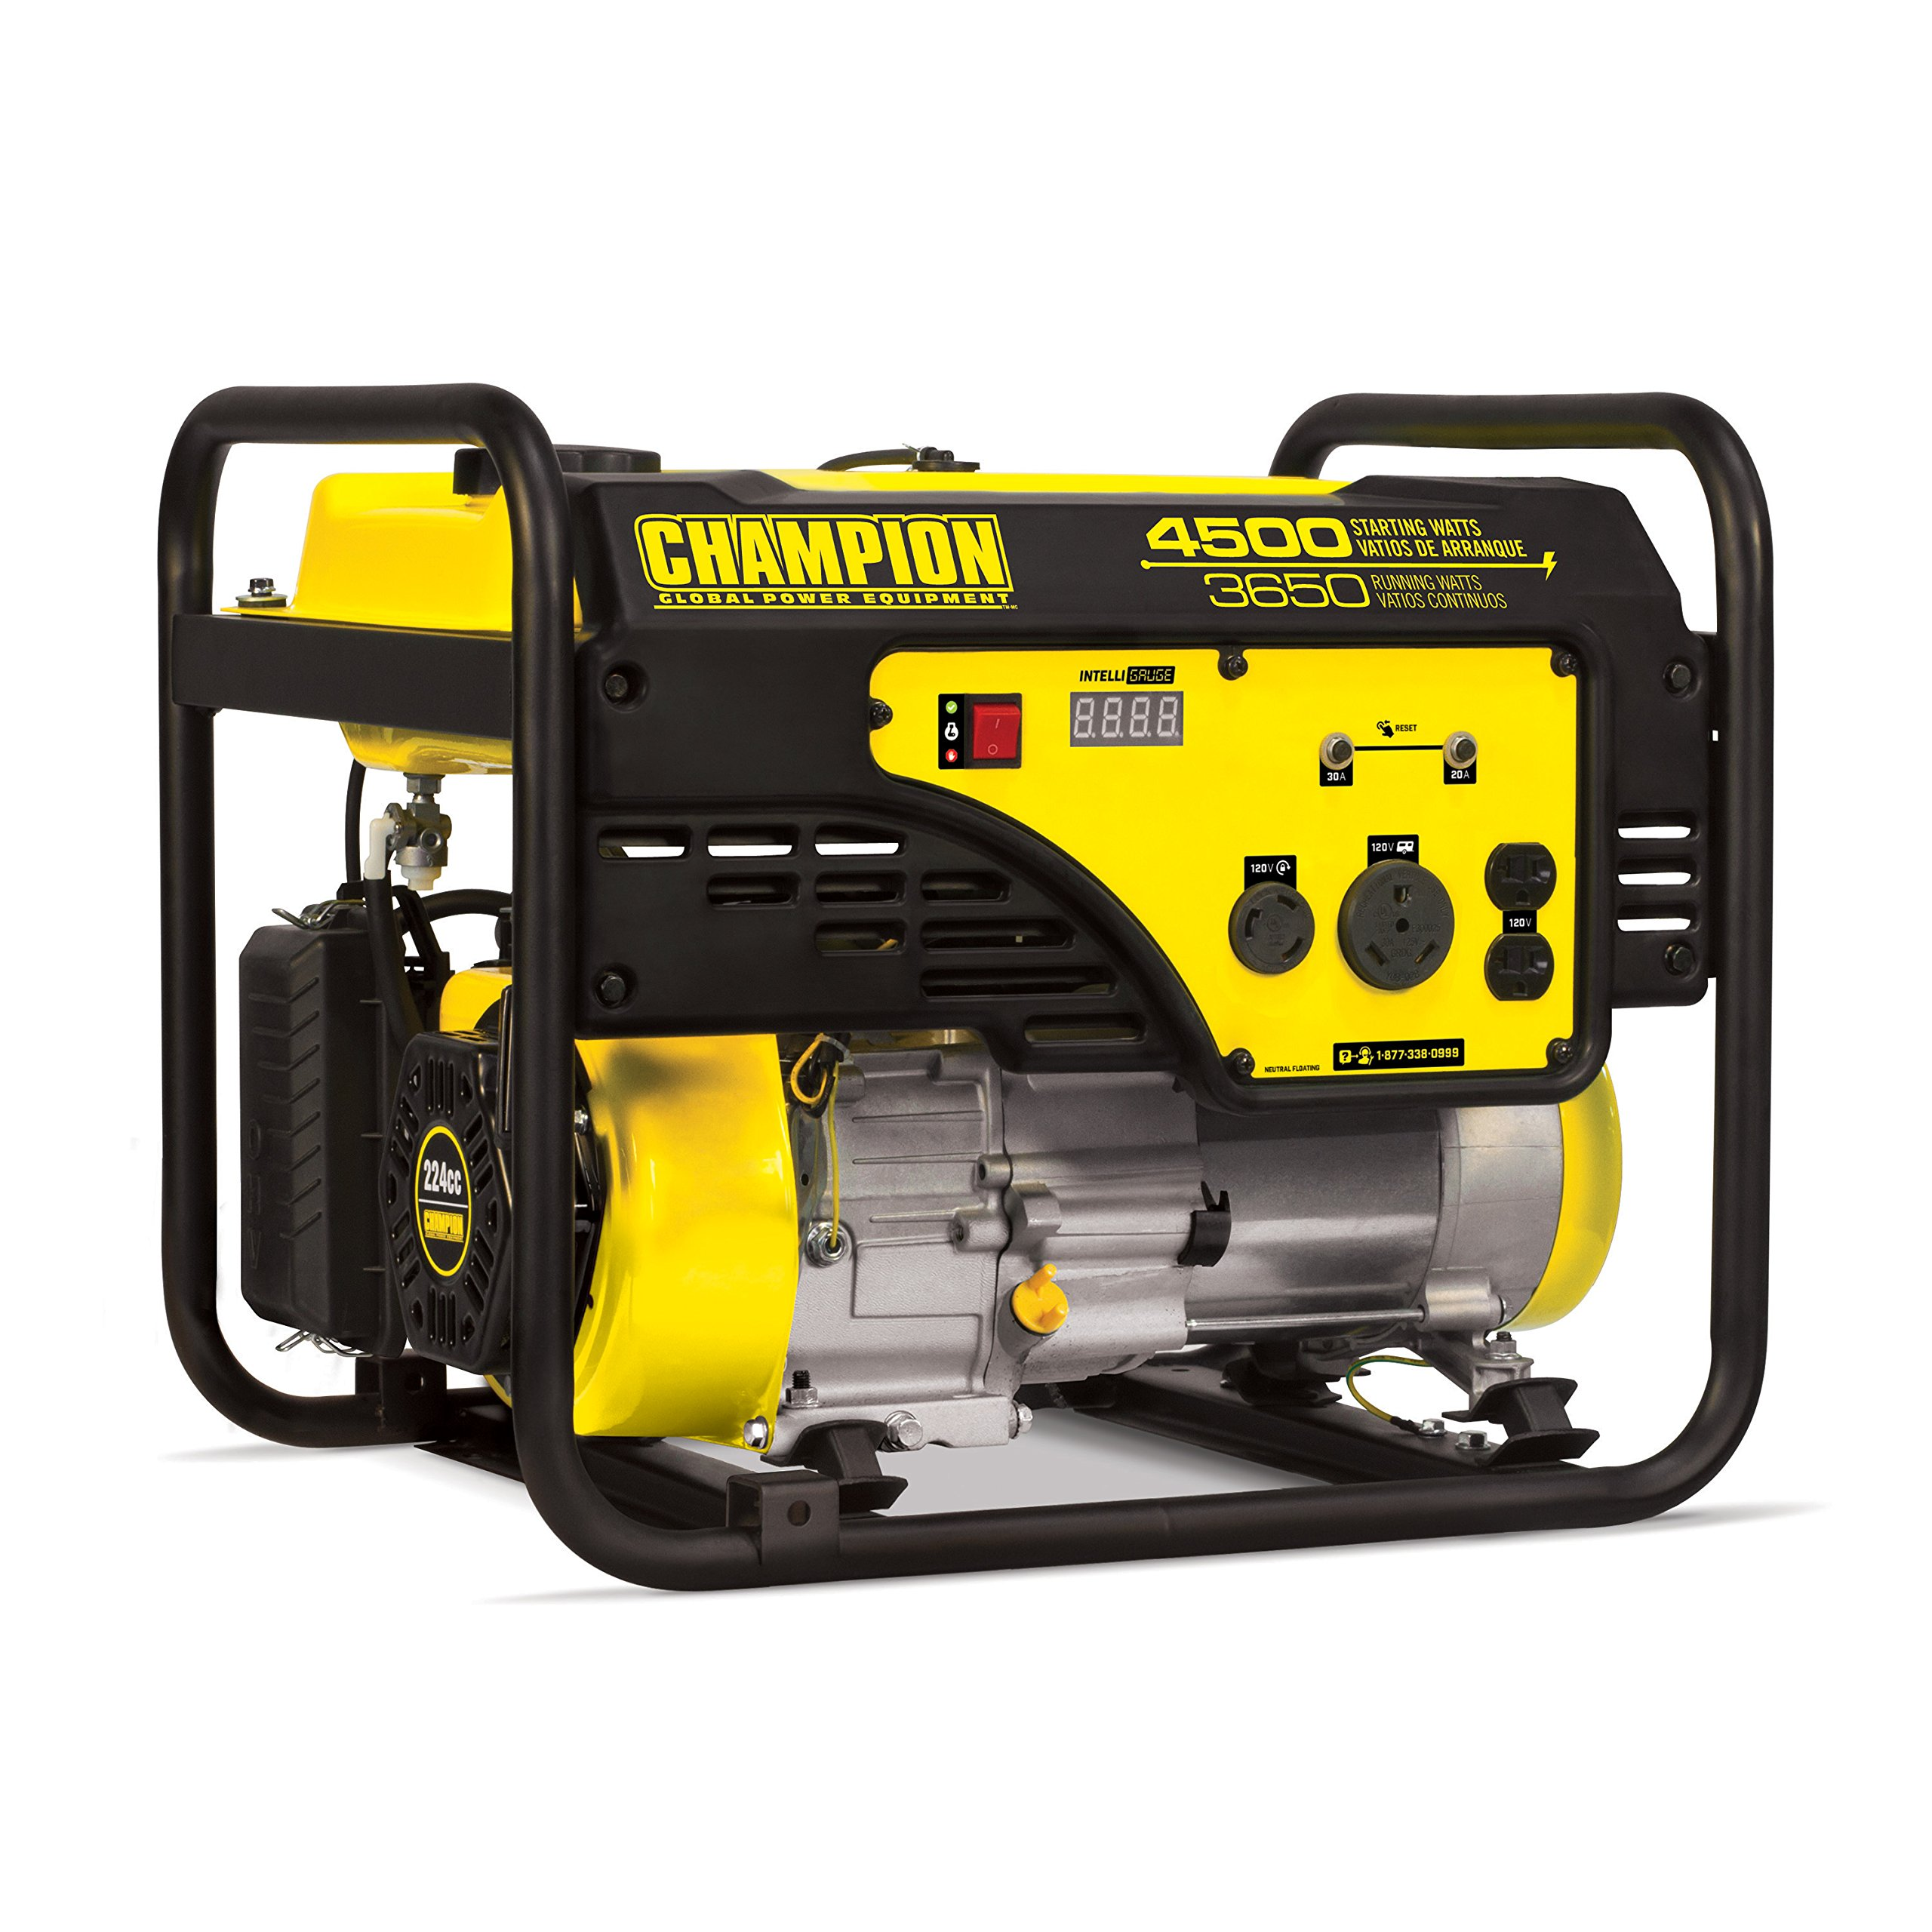 Champion 3650-Watt RV Ready Portable Generator (EPA) by Champion Power Equipment